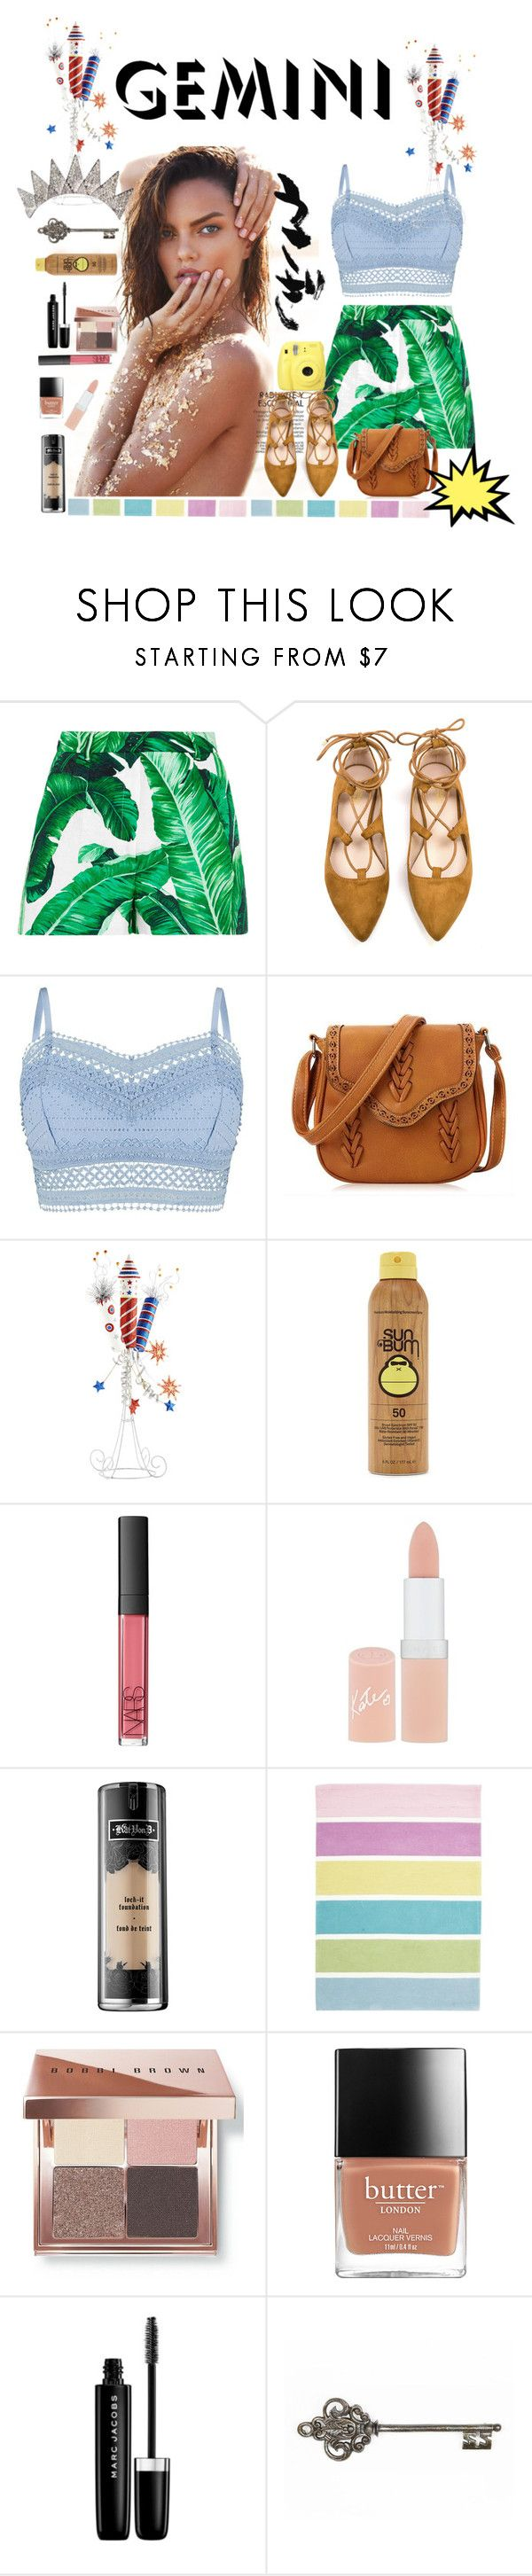 """yass! Gemini"" by anilu-corazon-chang ❤ liked on Polyvore featuring Dolce&Gabbana, Fuji, Lipsy, Pier 1 Imports, Forever 21, NARS Cosmetics, Rimmel, Kat Von D, Unitex International and Bobbi Brown Cosmetics"